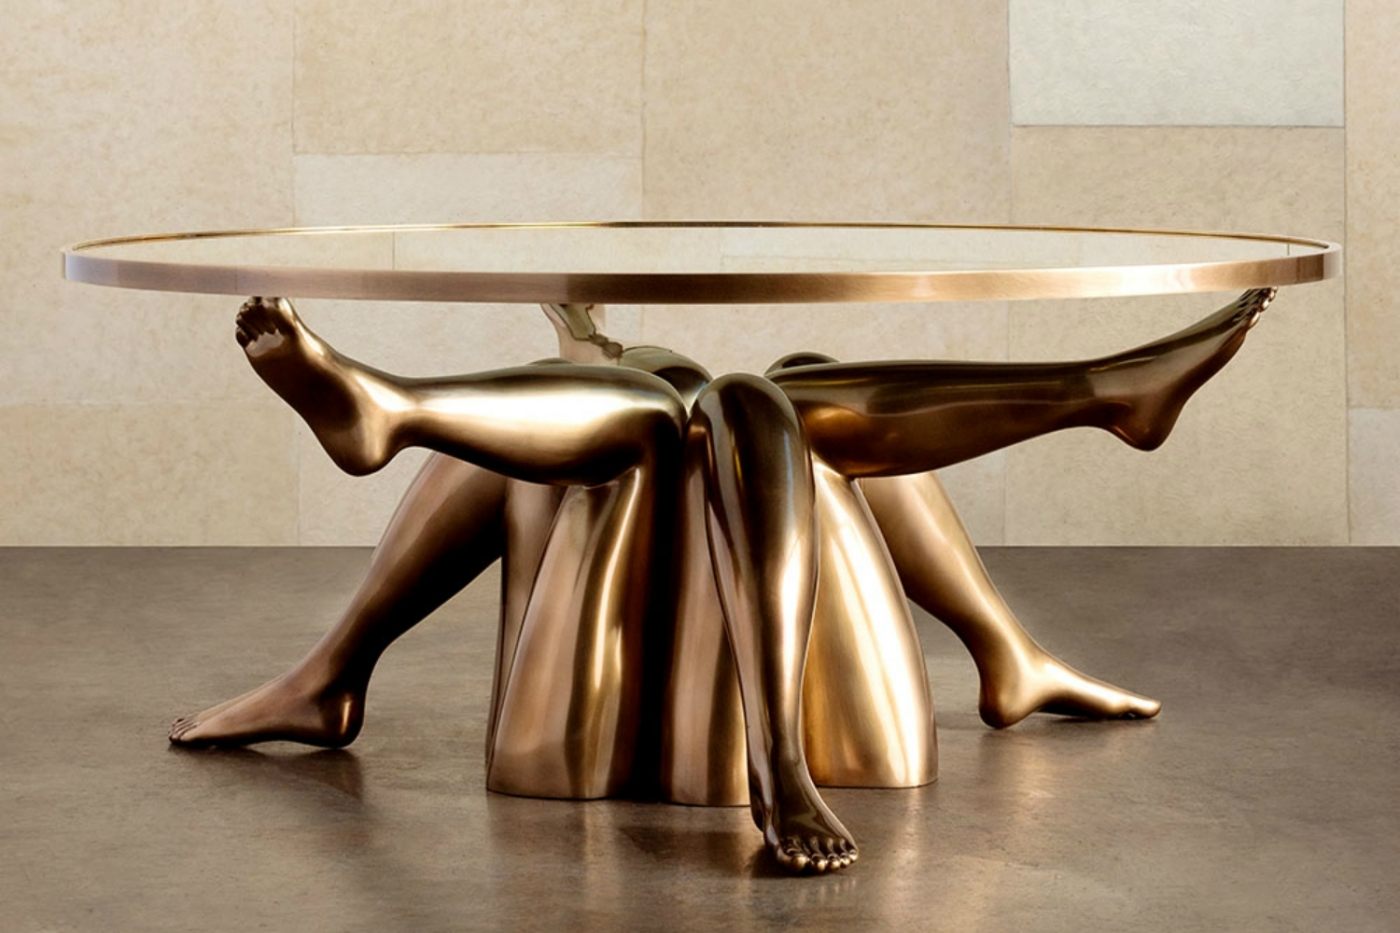 kelly wearstler A Daring And Chic New Furniture Collection by Kelly Wearstler A Daring And Chic New Furniture Collection by KellyWearstler feature 1400x933